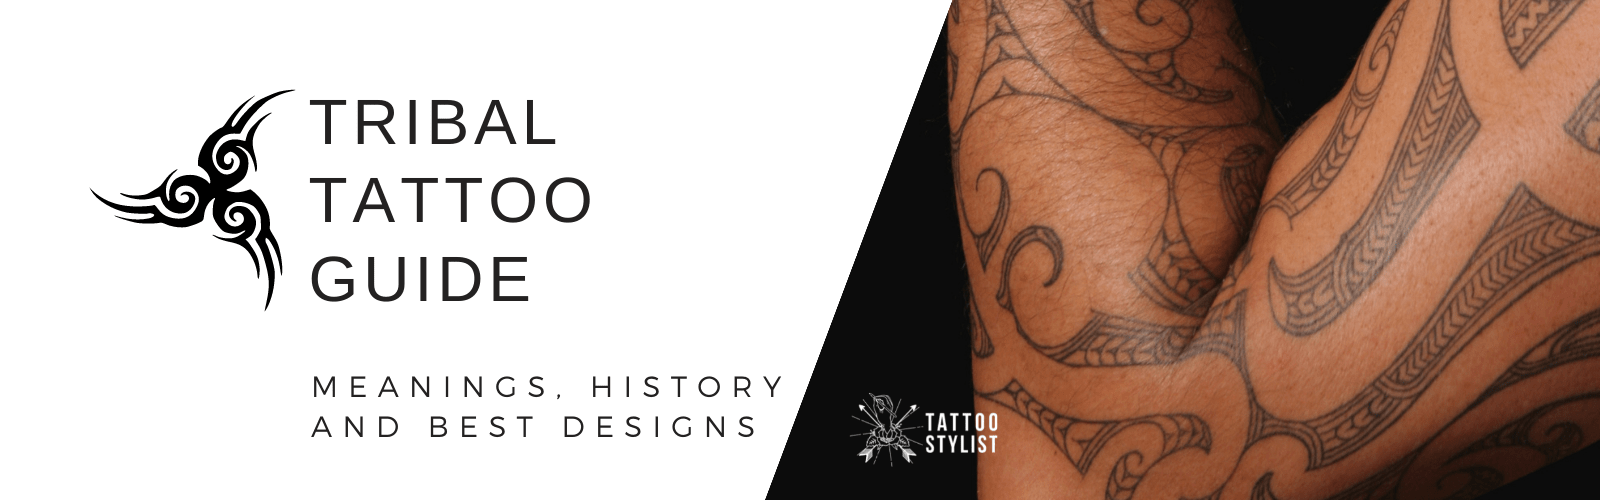 tribal tattoo featured image